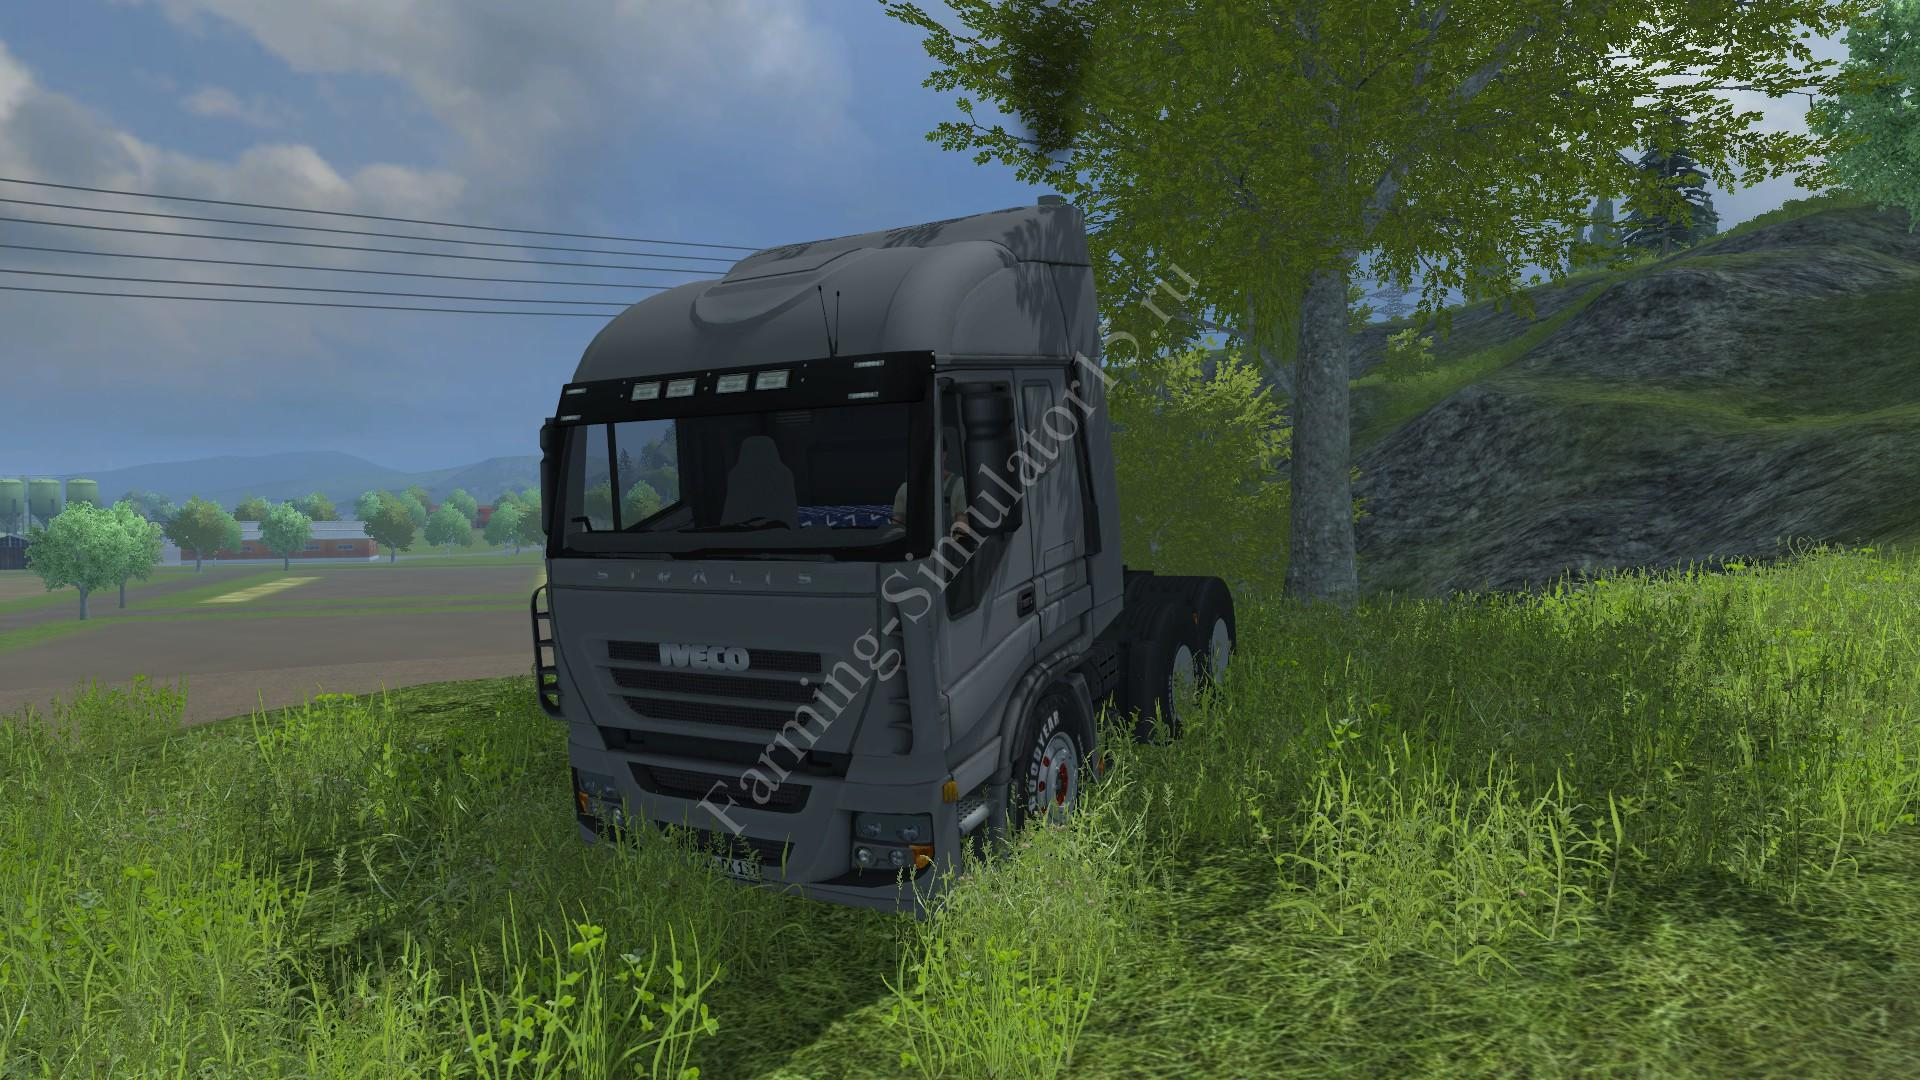 Мод грузовика Iveco Stralis AS 600 v 1.0 Silver Farming Simulator 2013, Farming Simulator 13